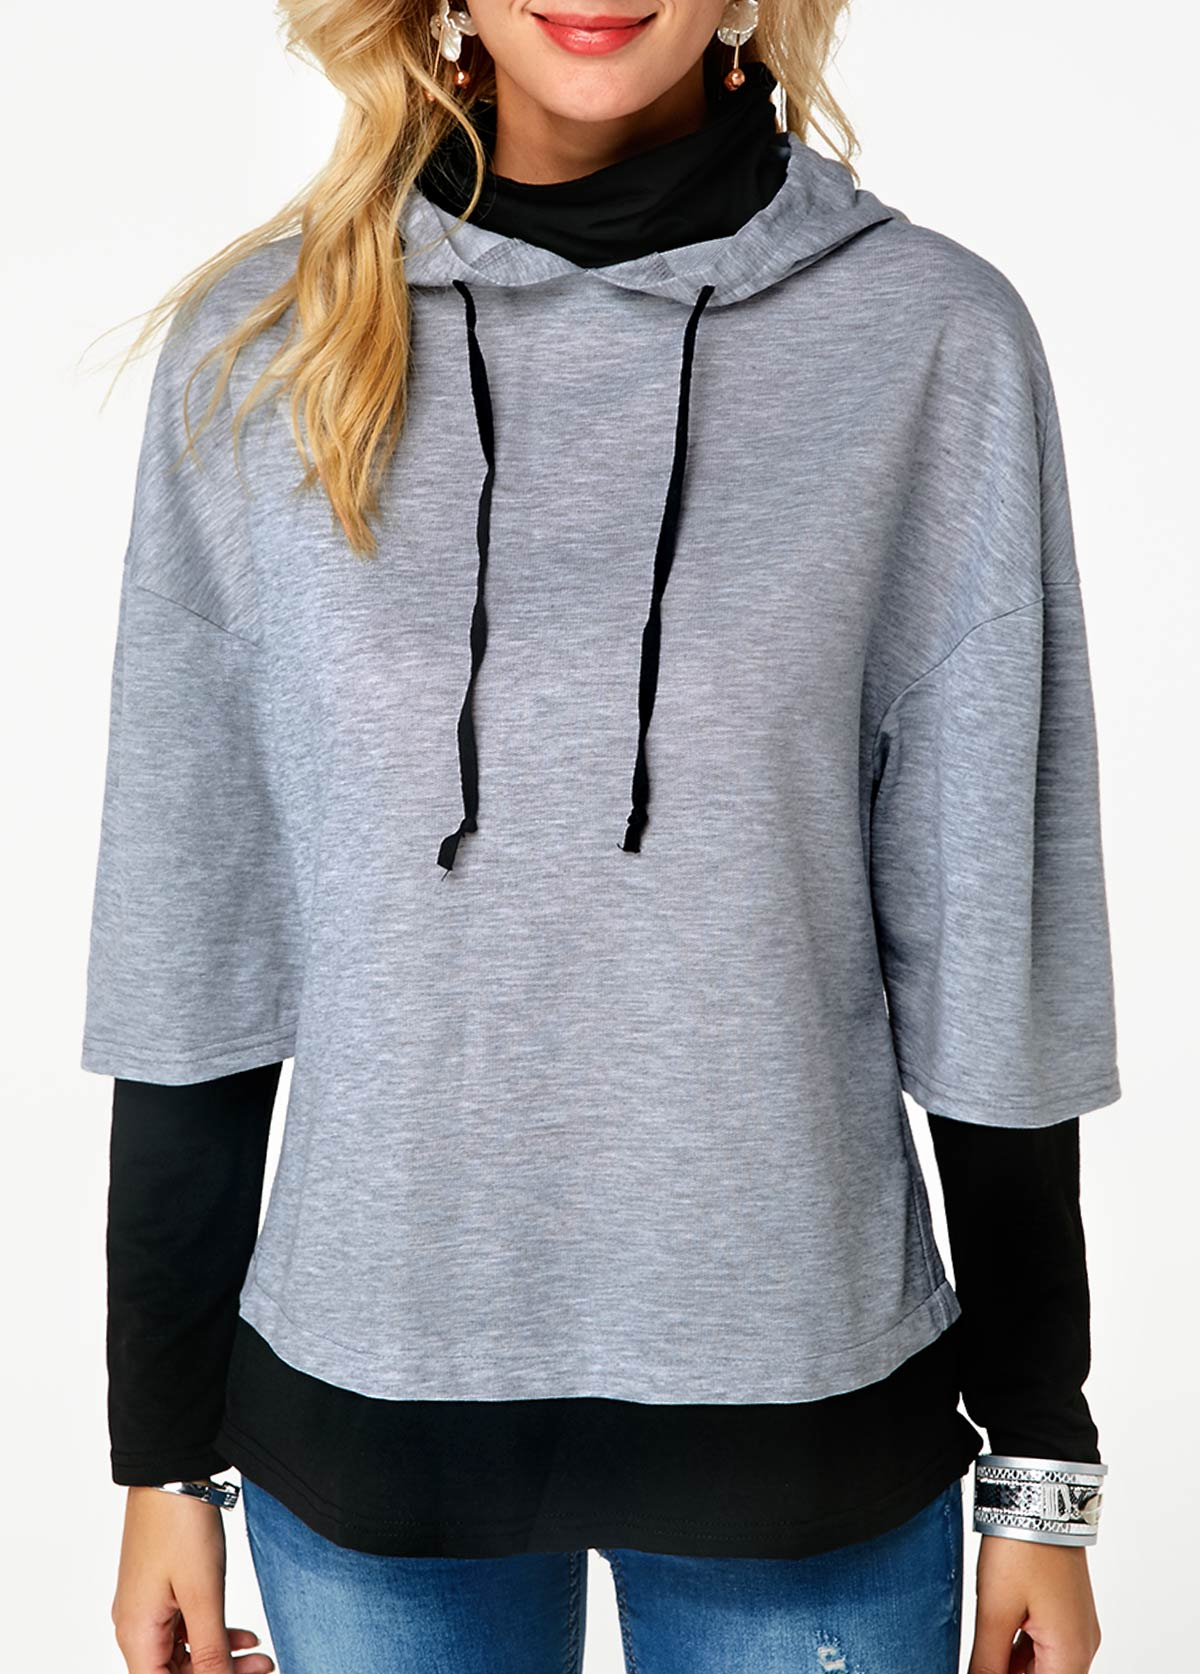 2f4d8bfb6e1 Funnel Neck Grey Long Sleeve Patchwork Drawstring Hoodie ...